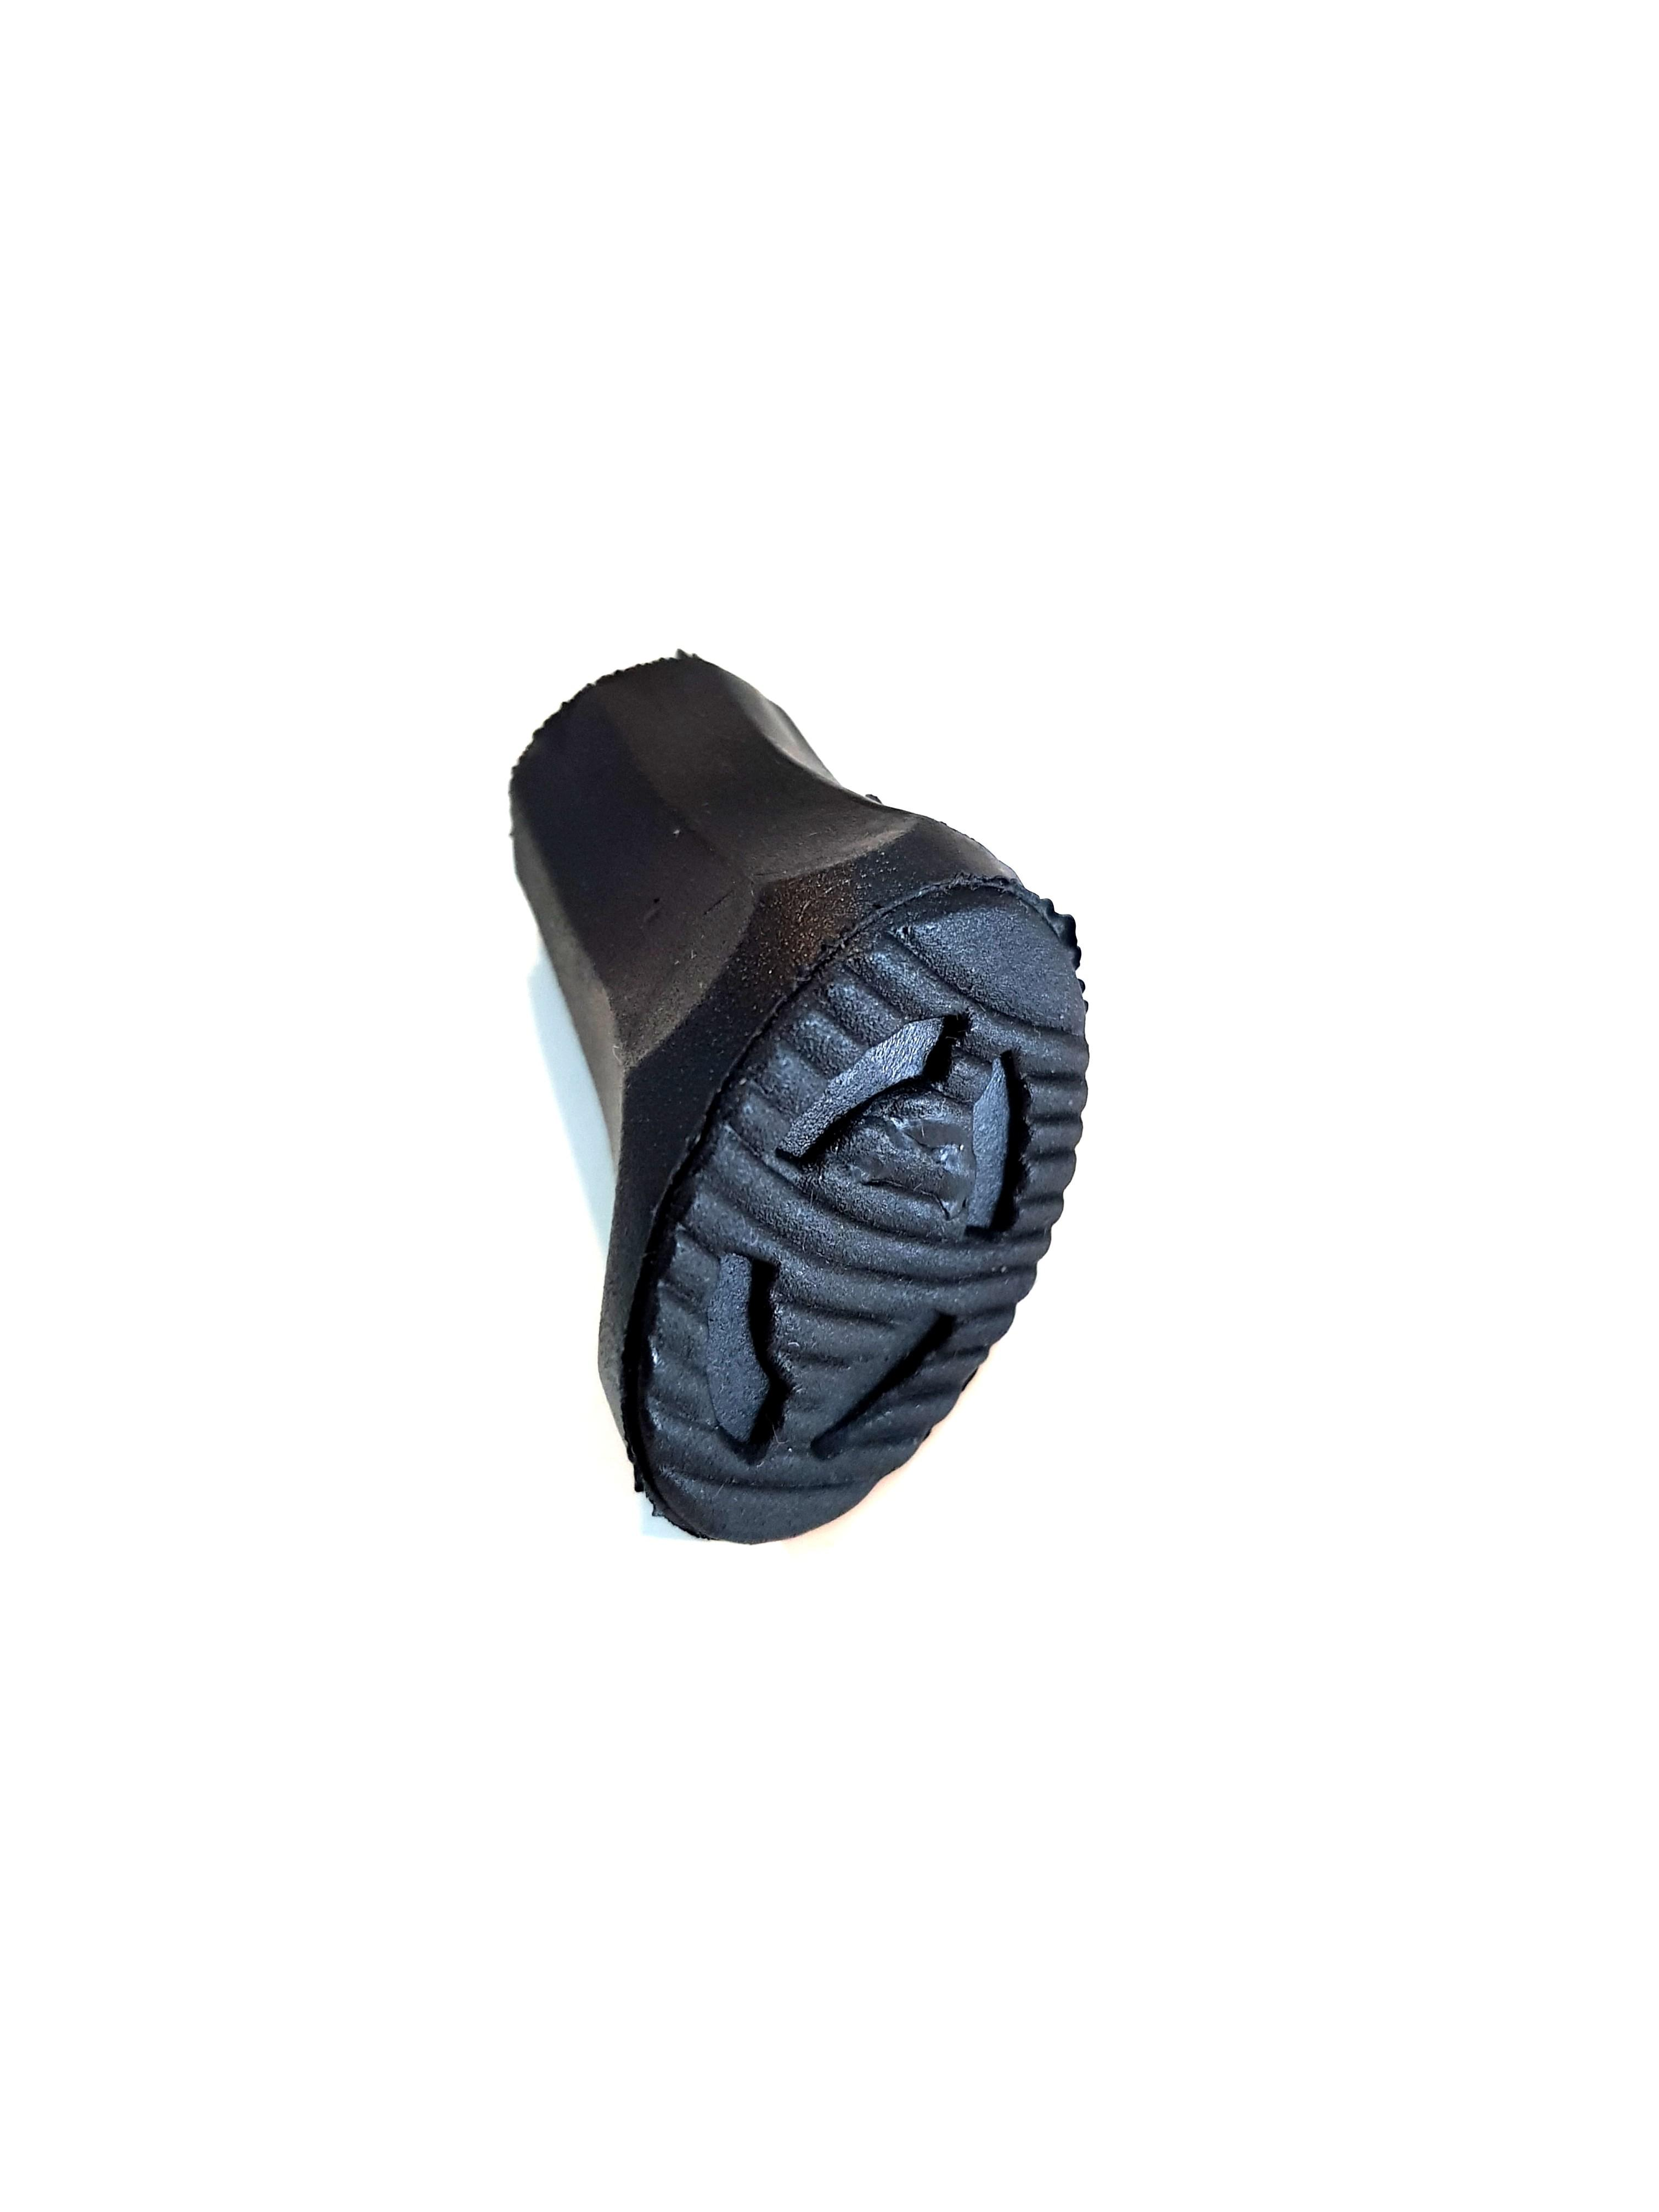 ***In Stock - Side Stand Rubber